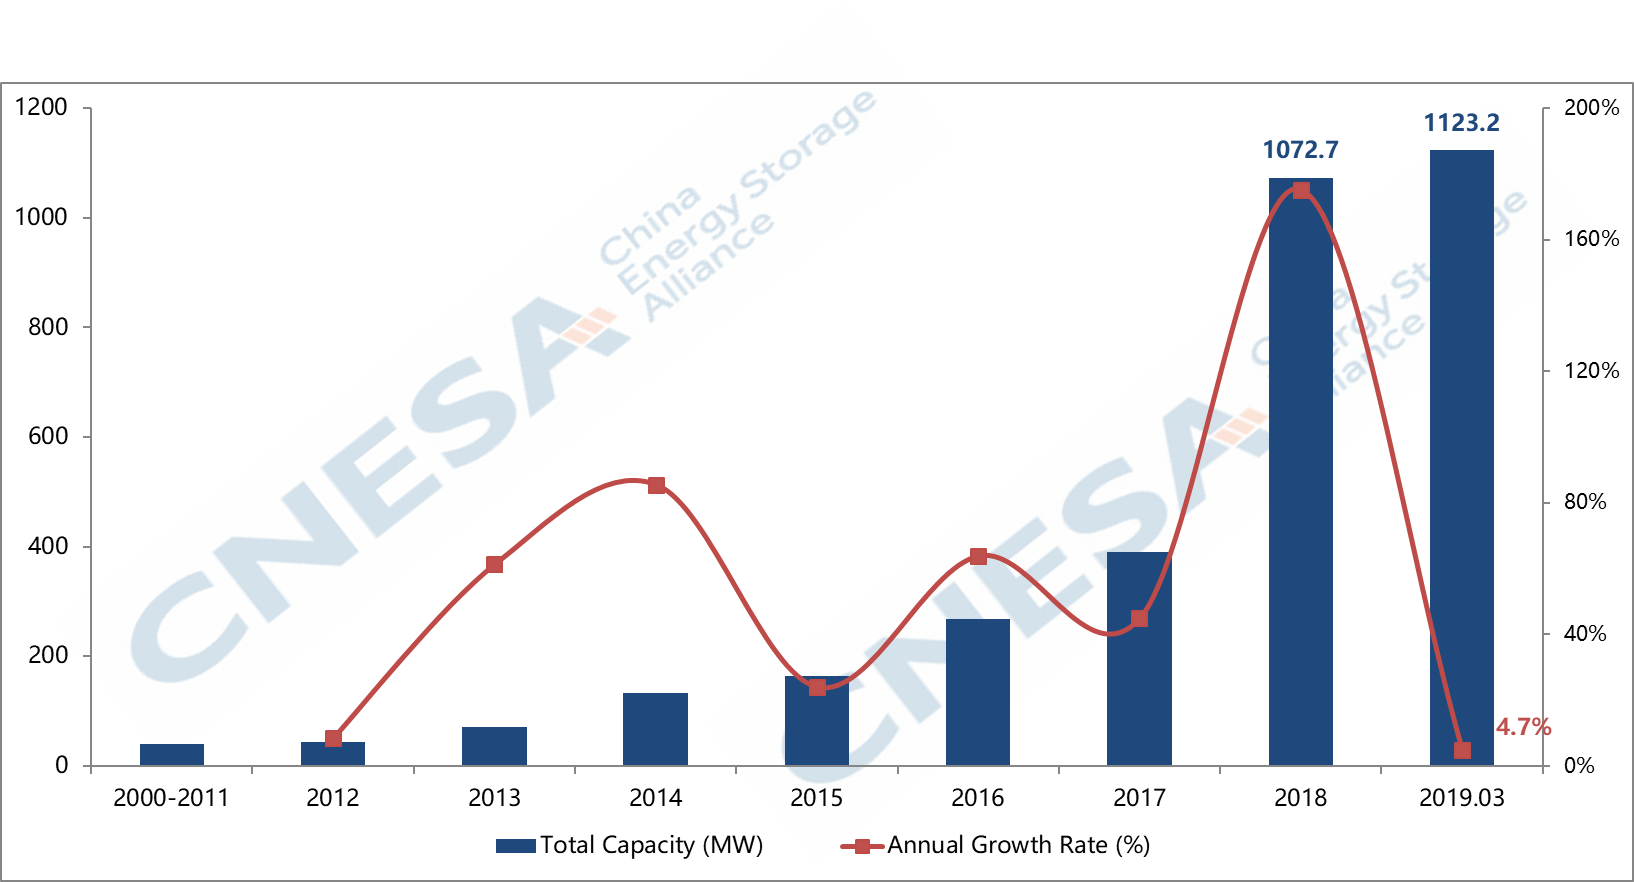 Data Source: CNESA Project Tracking Database